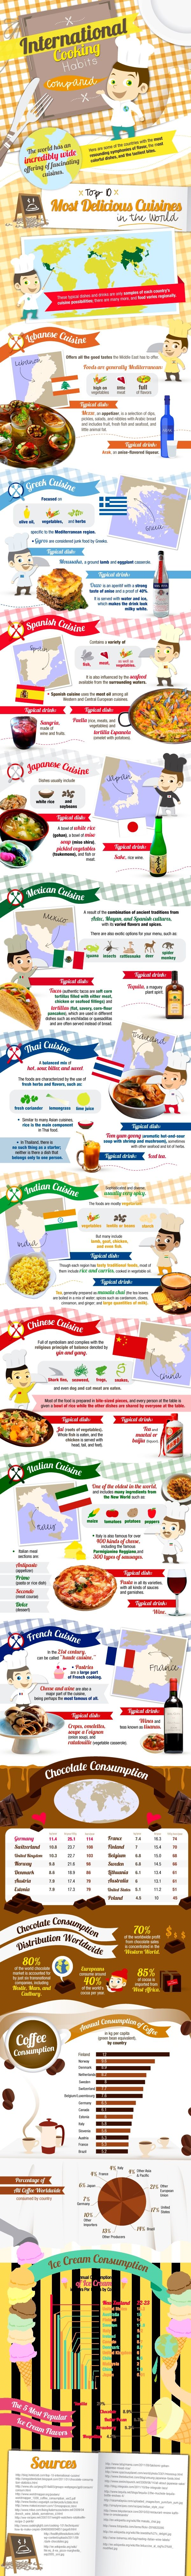 International Cooking Habits Compared!